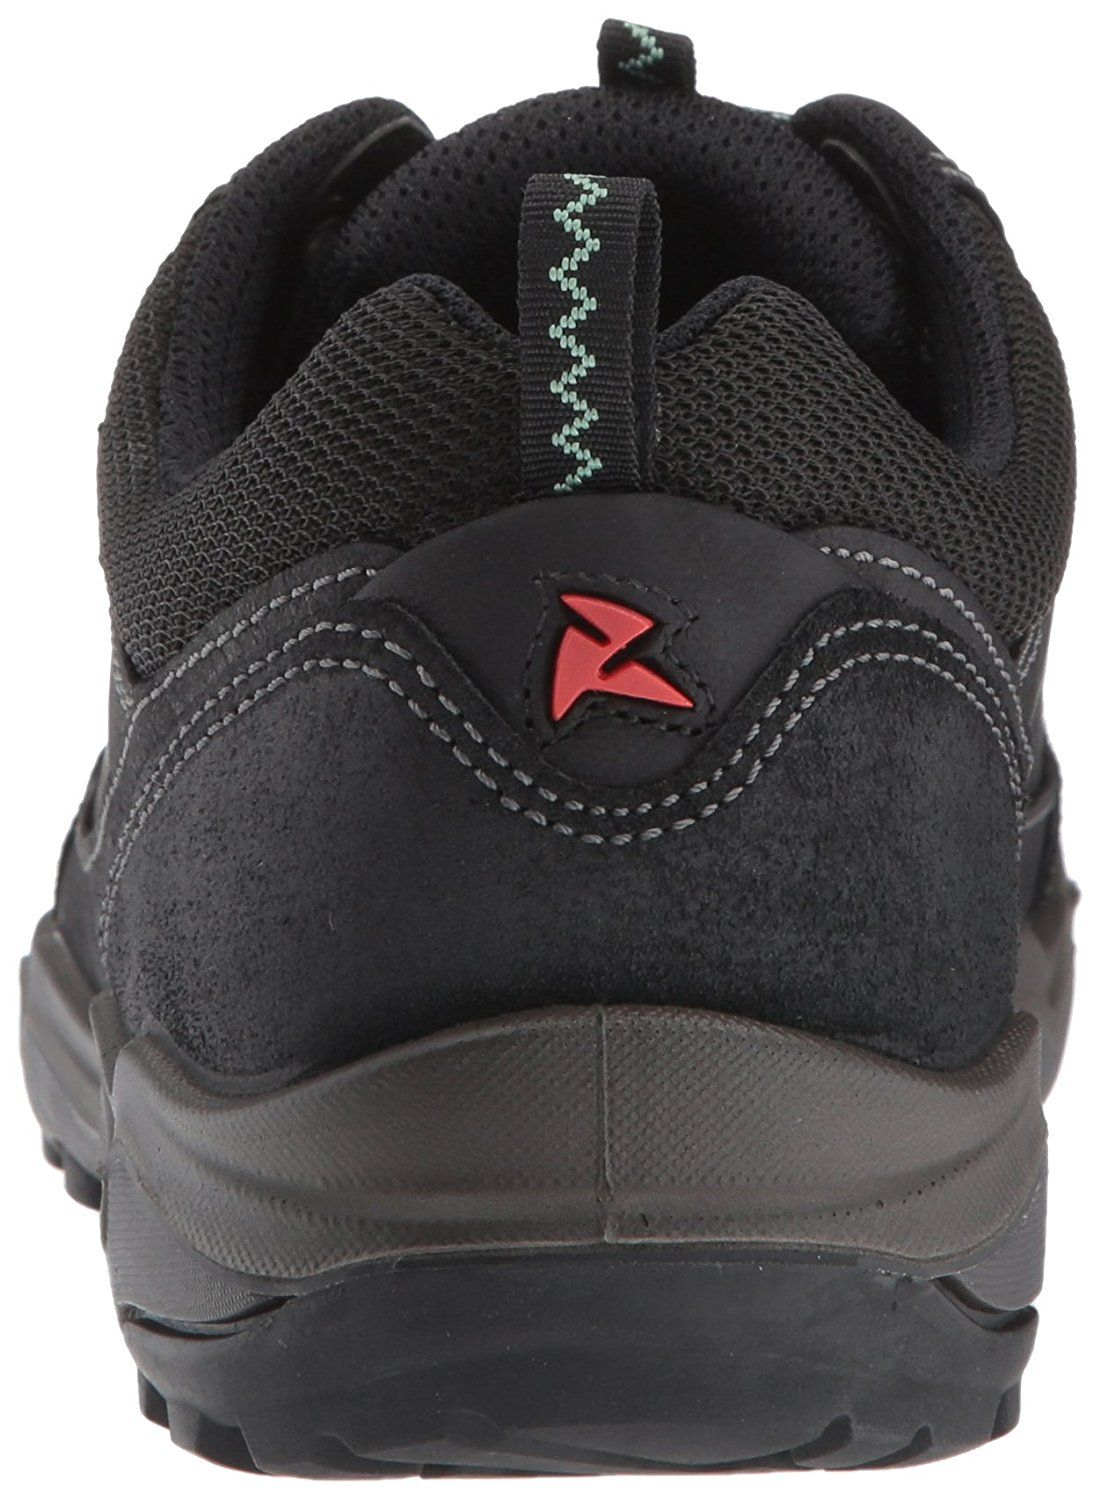 Ulterra Low Gore-Tex Hiking Shoe